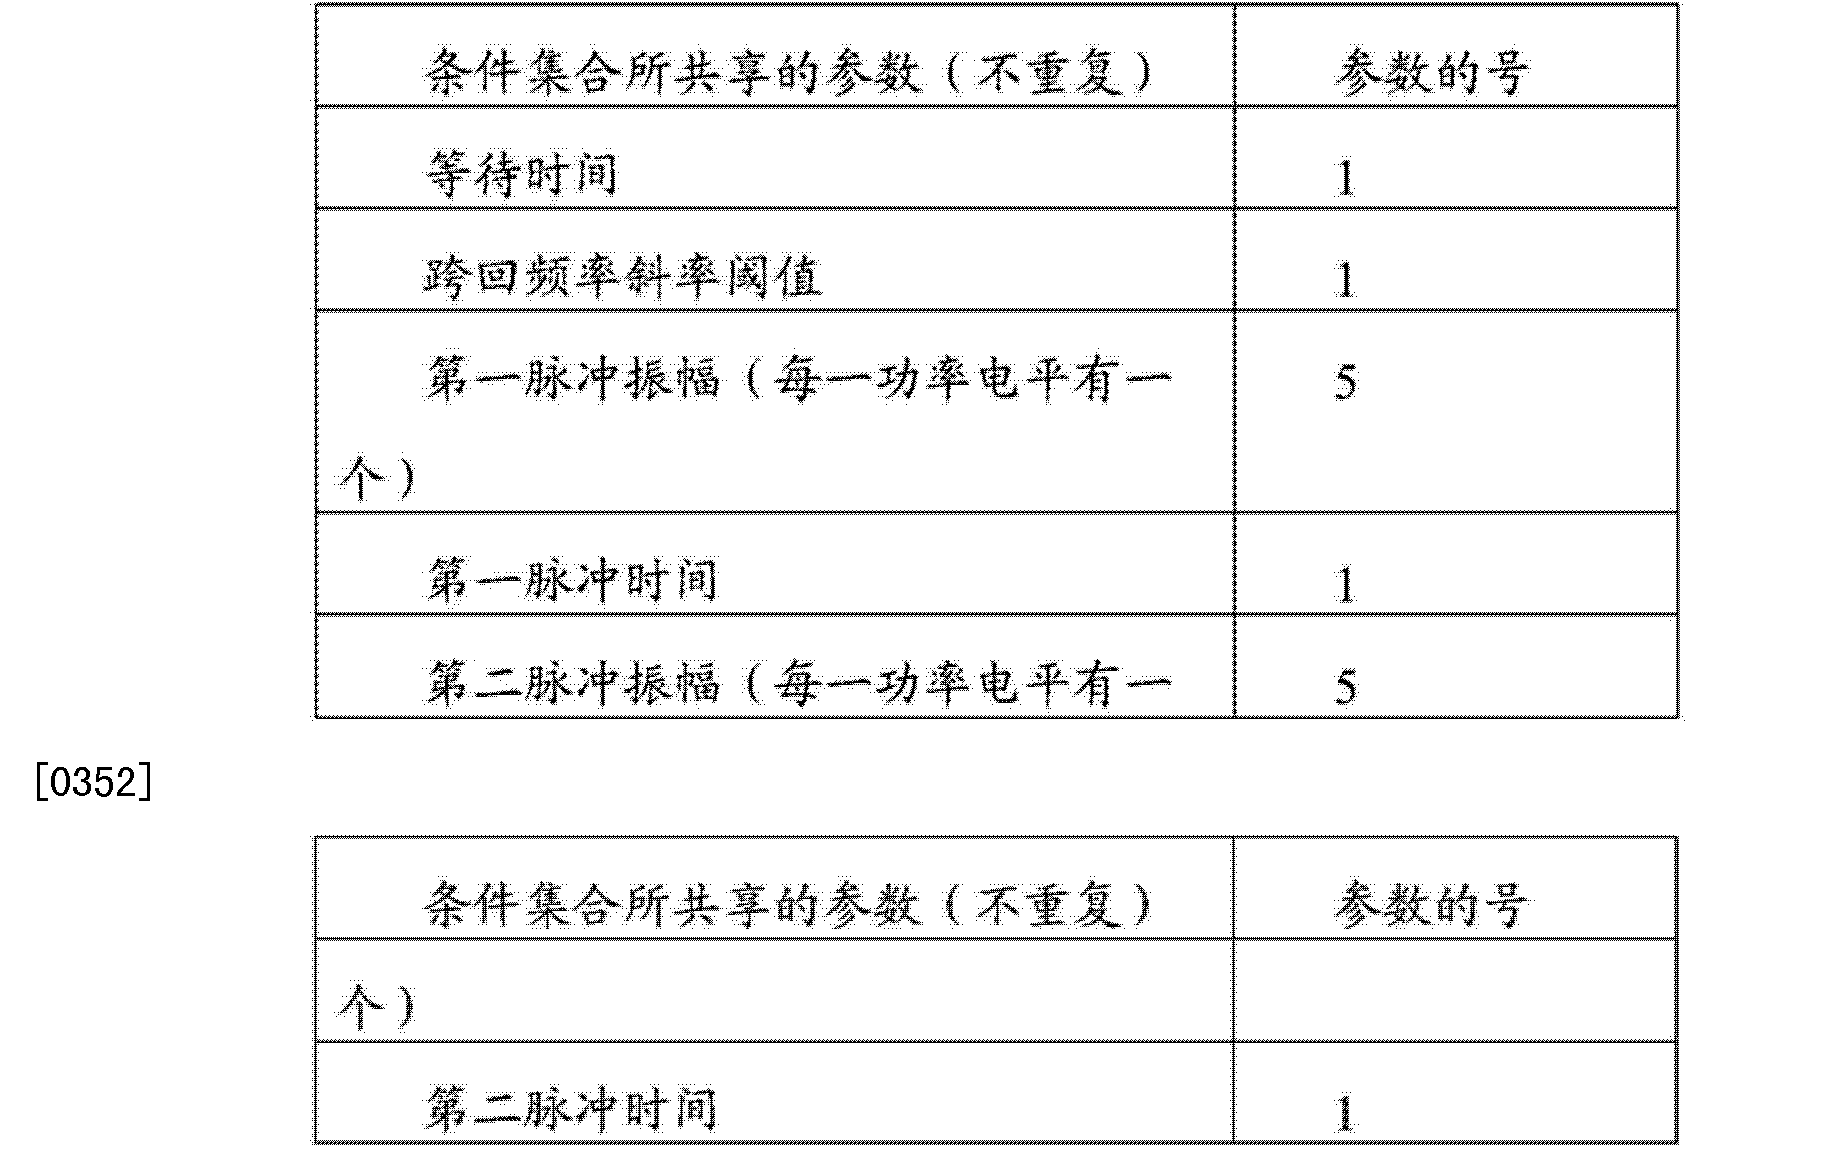 Cn104363843a Rotatable Electrical Connection For Ultrasonic Measurement Circuit Electricalequipmentcircuit Diagram Figure Cn104363843ad00451